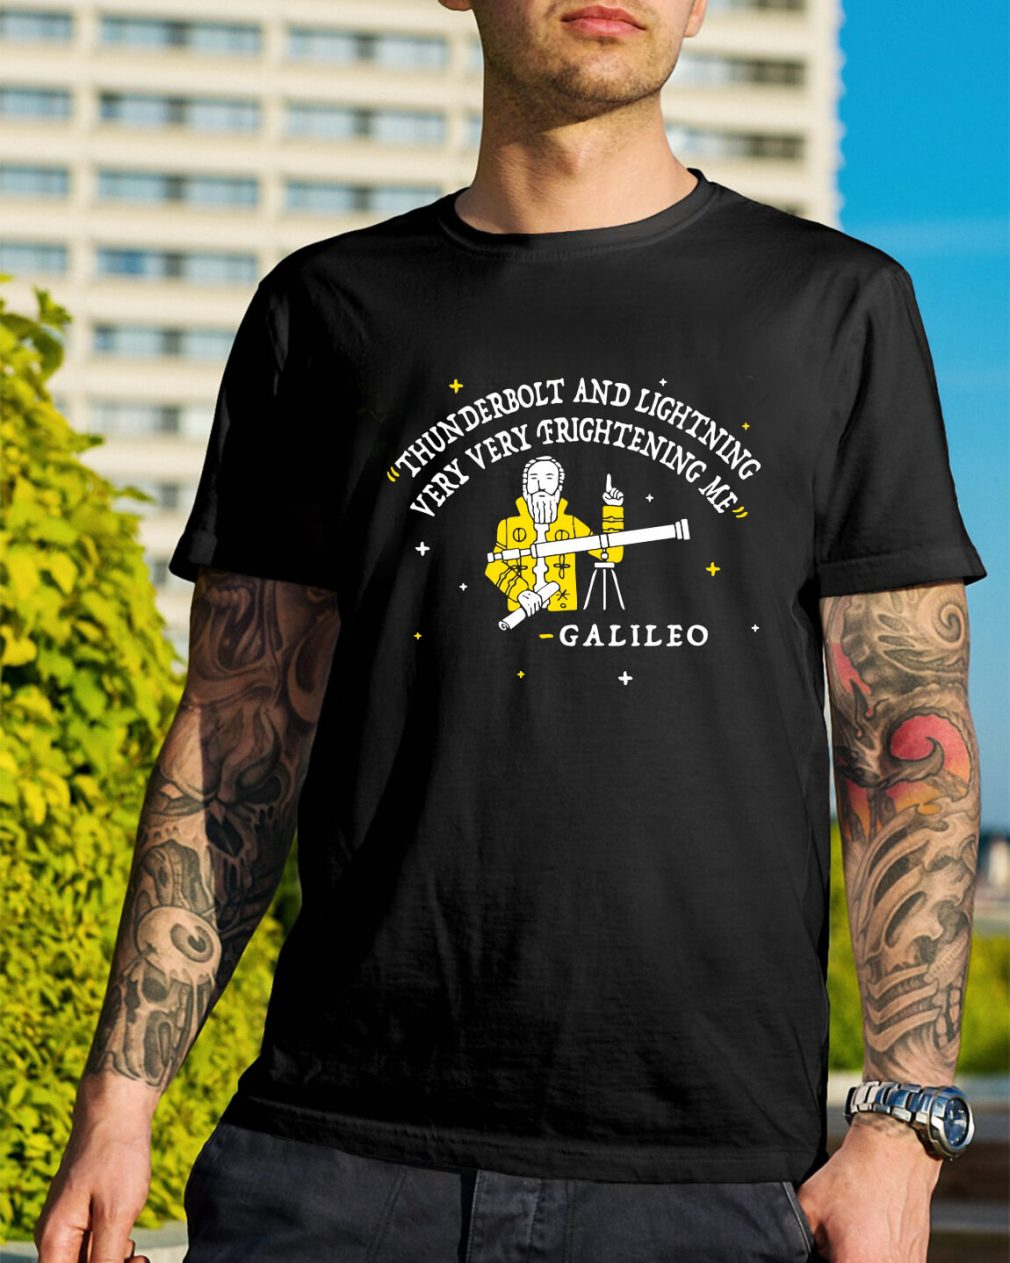 Thunderbolt and lightning very very frightening me Galileo shirt